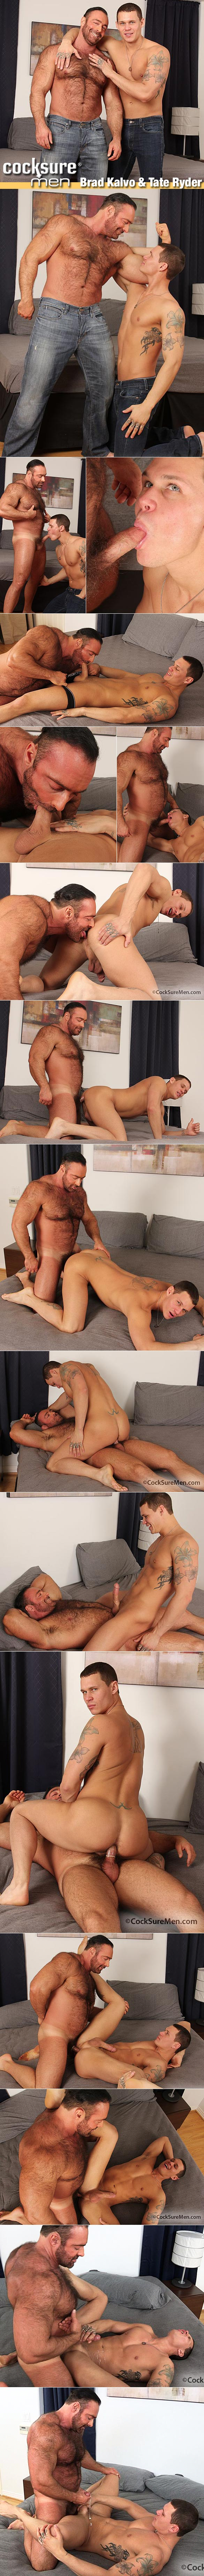 CocksureMen: Hairy muscle hunk Brad Kalvo pounds Tate Ryder